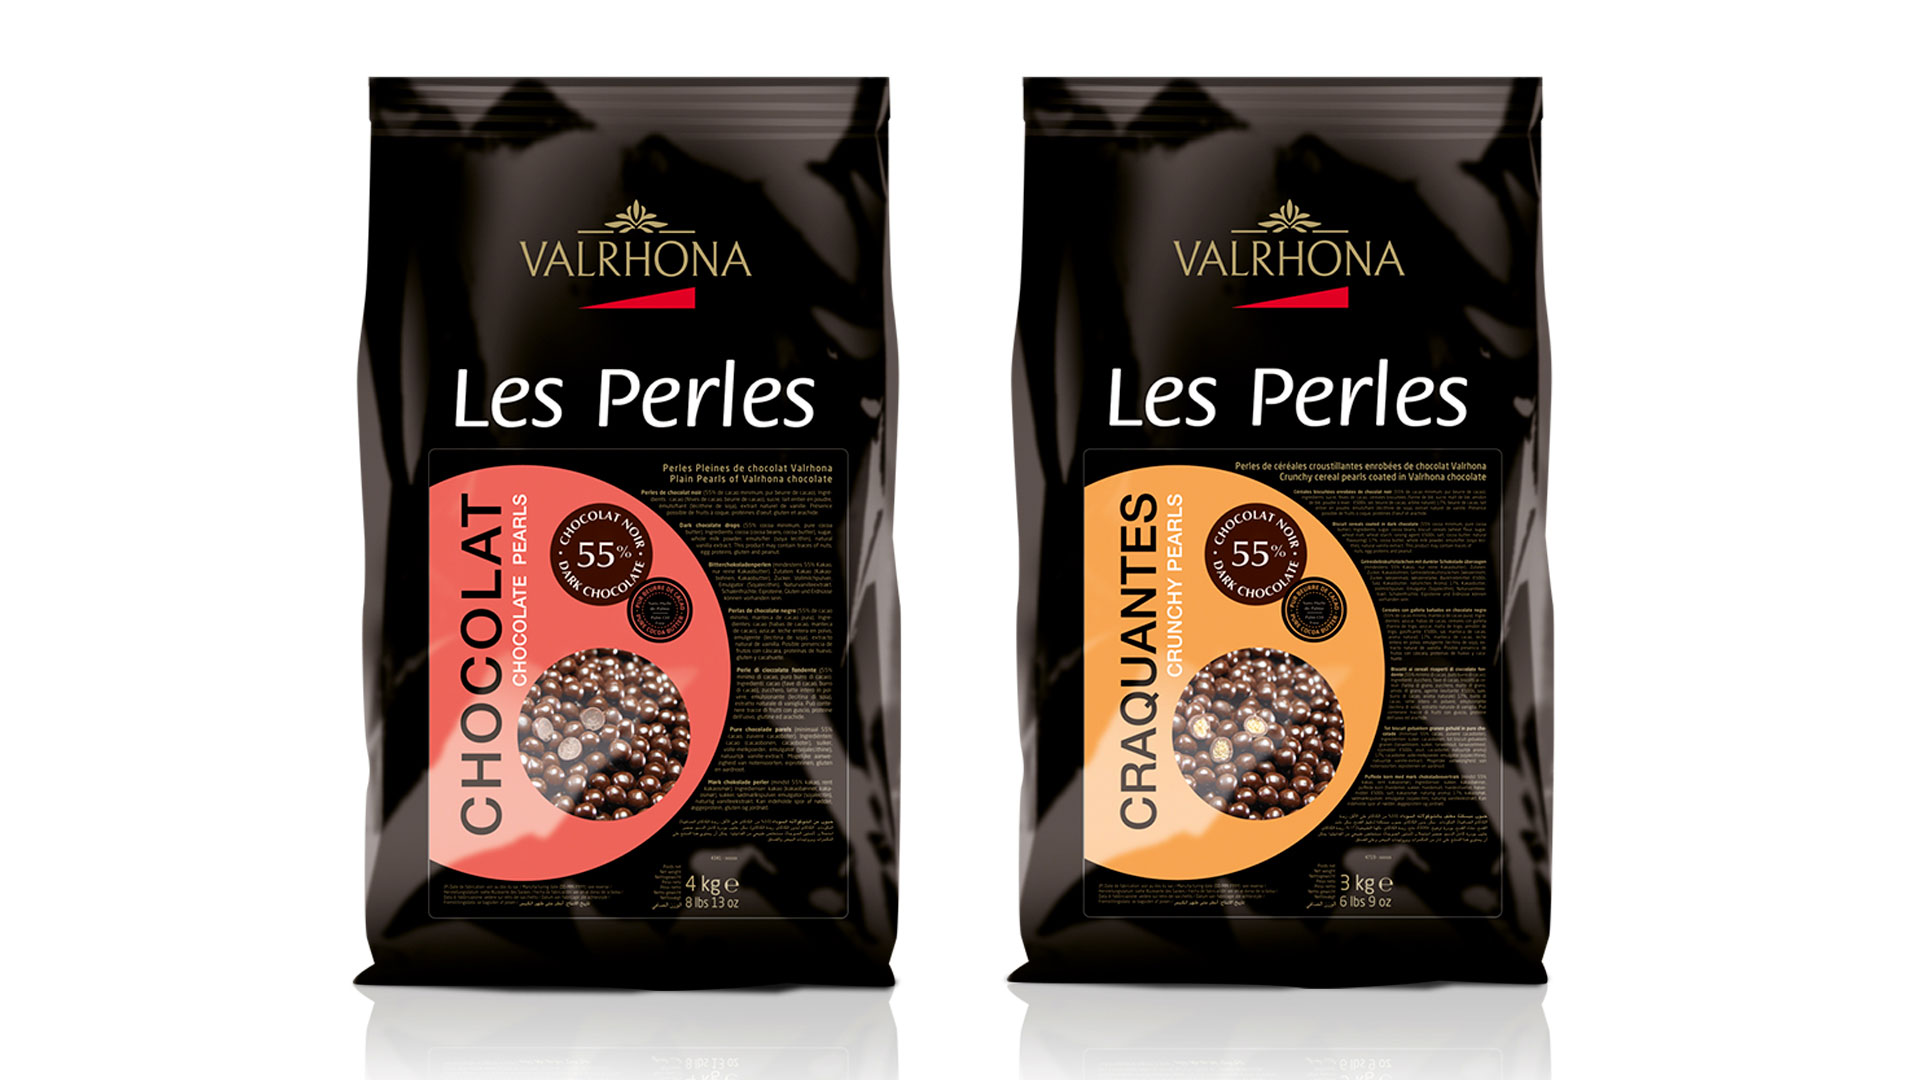 Les perles valrhona cartoon.design